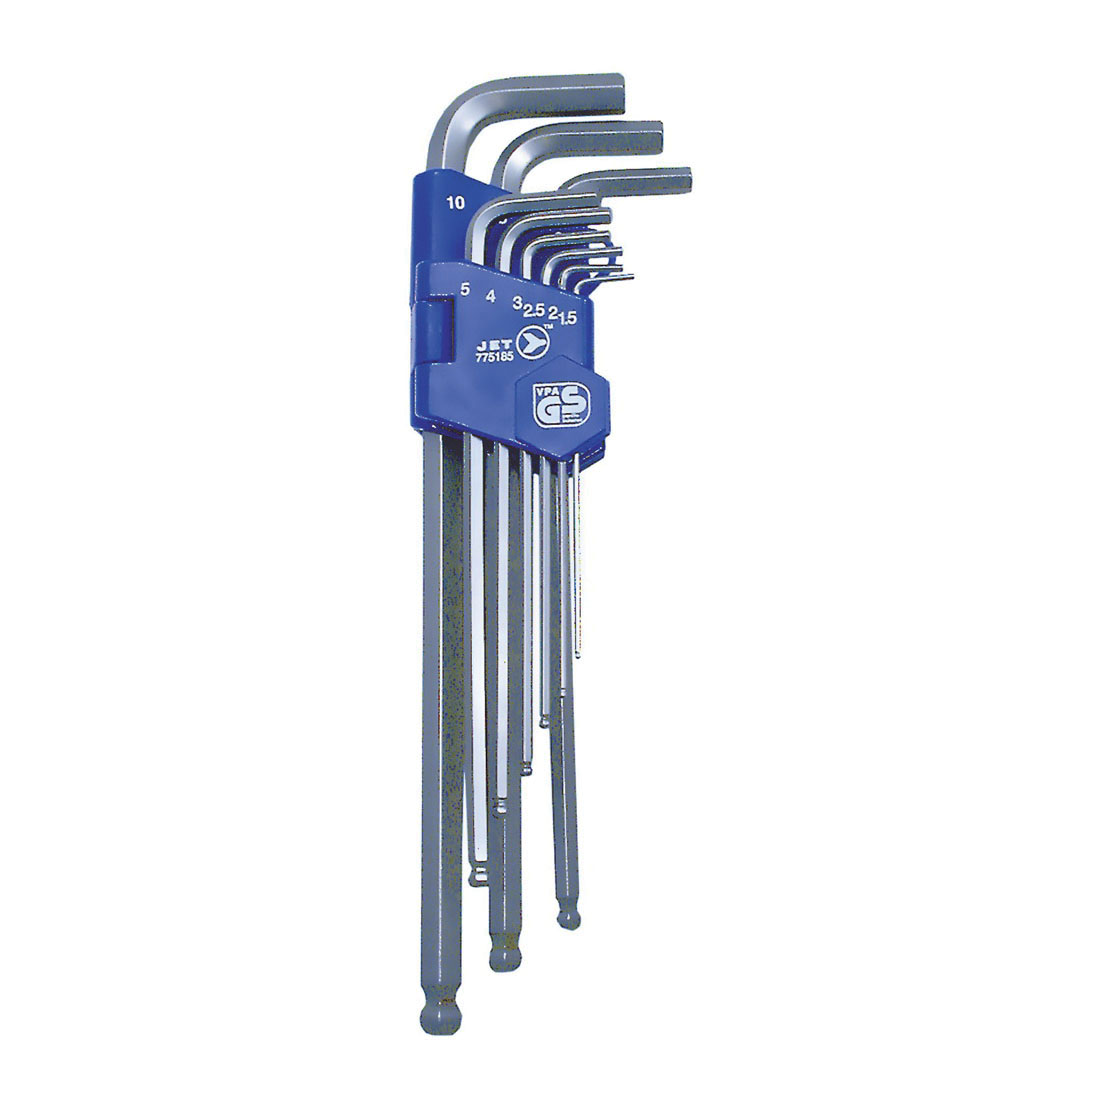 JET 775185 Ball Nose Extra Long Hex Key Set, Metric, 9 Pieces, 1.5 to 10 mm Hex, ANSI Specified, S2 Steel